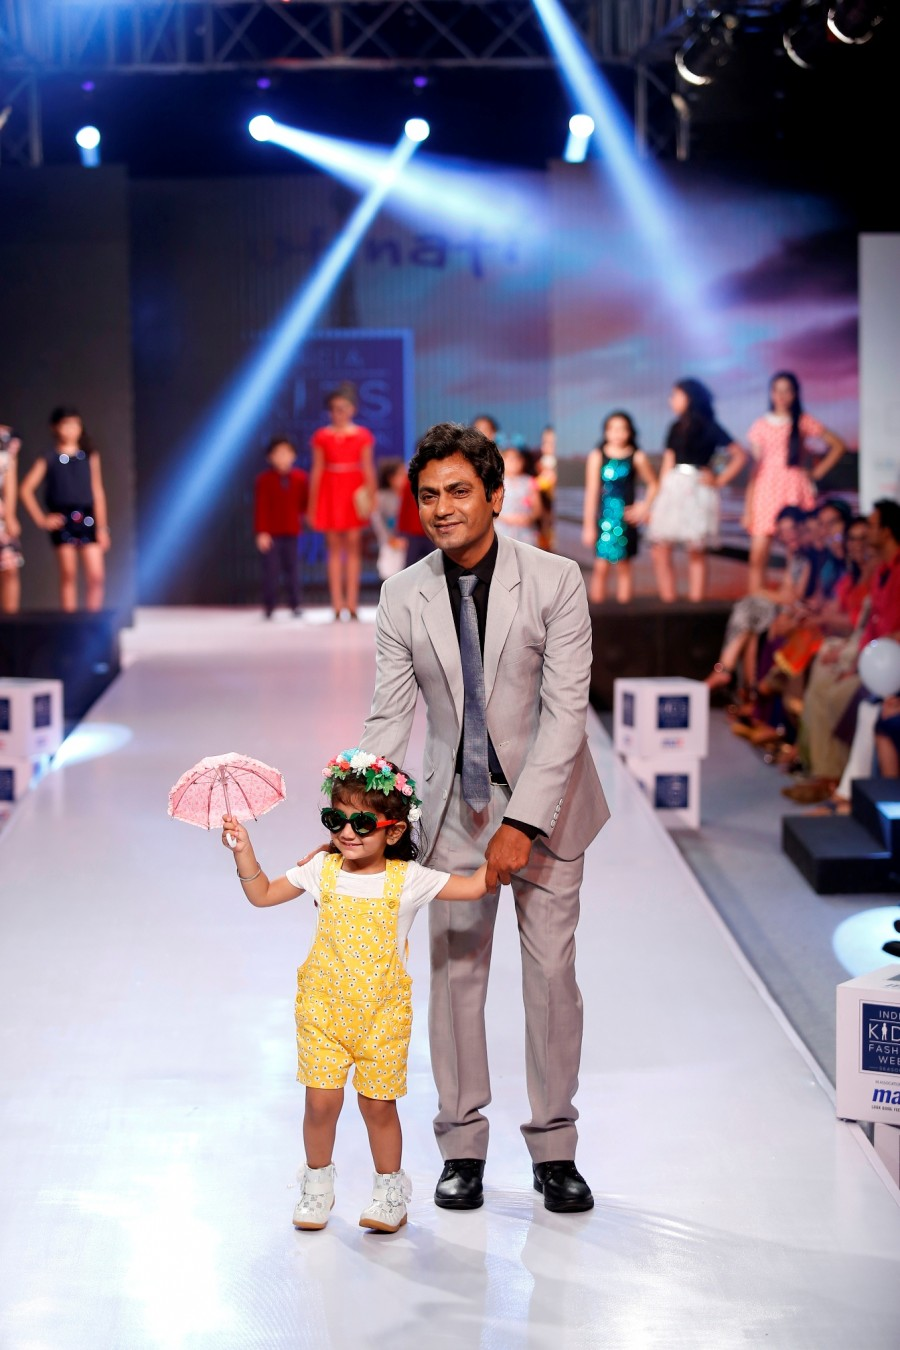 Nawazuddin Siddiqui,India Kids Fashion Week,India Kids Fashion Week  2016,IKFW,IKFW 2016,National Award winner Nawazuddin Siddiqui,Nawazuddin Siddiqui pics,Nawazuddin Siddiqui images,Nawazuddin Siddiqui stills,Nawazuddin Siddiqui pictures